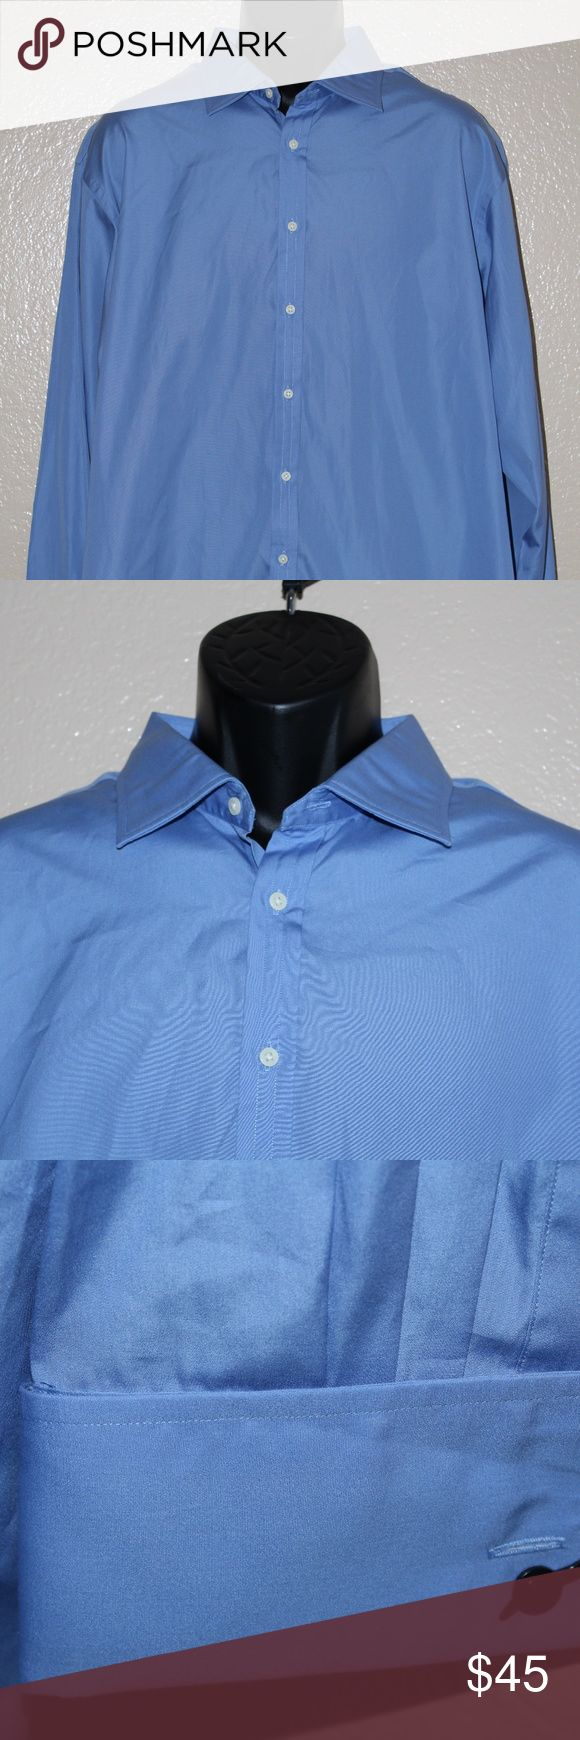 THOMAS PINK JERMYN STREET Traveller Sz 18/37 46/94 Pre-owned THOMAS PINK JERMYN STREET Traveller Solid Blue Dress Shirt SIZE 18/37 46/94 CM   Excellent condition! No stains, No tears.   Sleeve Length:Long Sleeve Color:Blue Country/Region of Manufacture:Thailand Pattern:Solid Brand:Thomas Pink Size Type:Regular Dress Shirt Size:18/37 46/94cm Material:100% Cotton Fit:Classic Fit Thomas Pink Shirts Dress Shirts